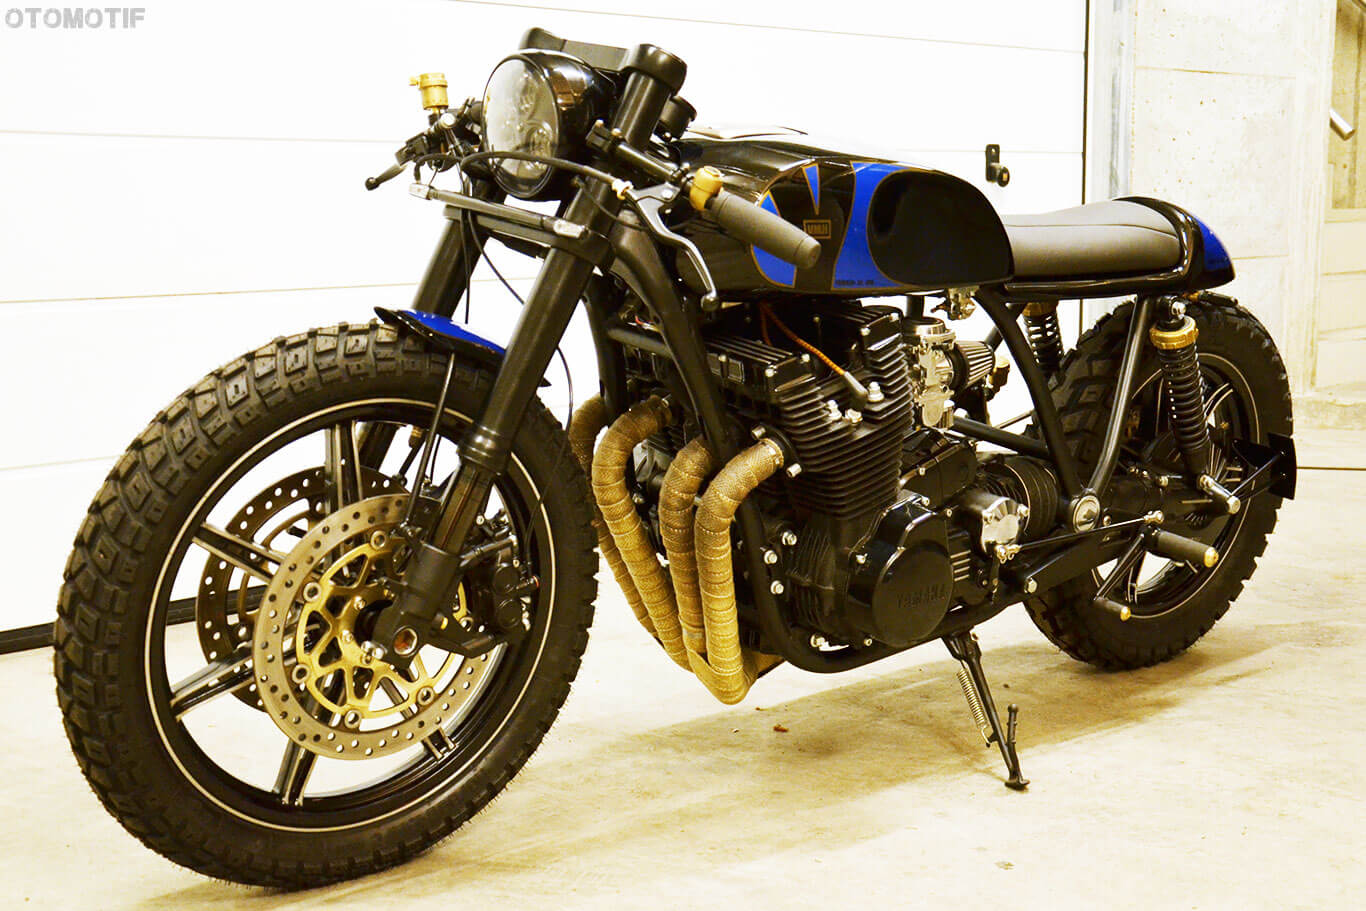 Dapper Rat Xs750 Cafe Racer additionally 73 20CB750 besides Caferacer honda gl500 further Xs650 Engine Rebuild Diagram also 39 Fork Tube Cover Bombshell 49 Mm. on xs750